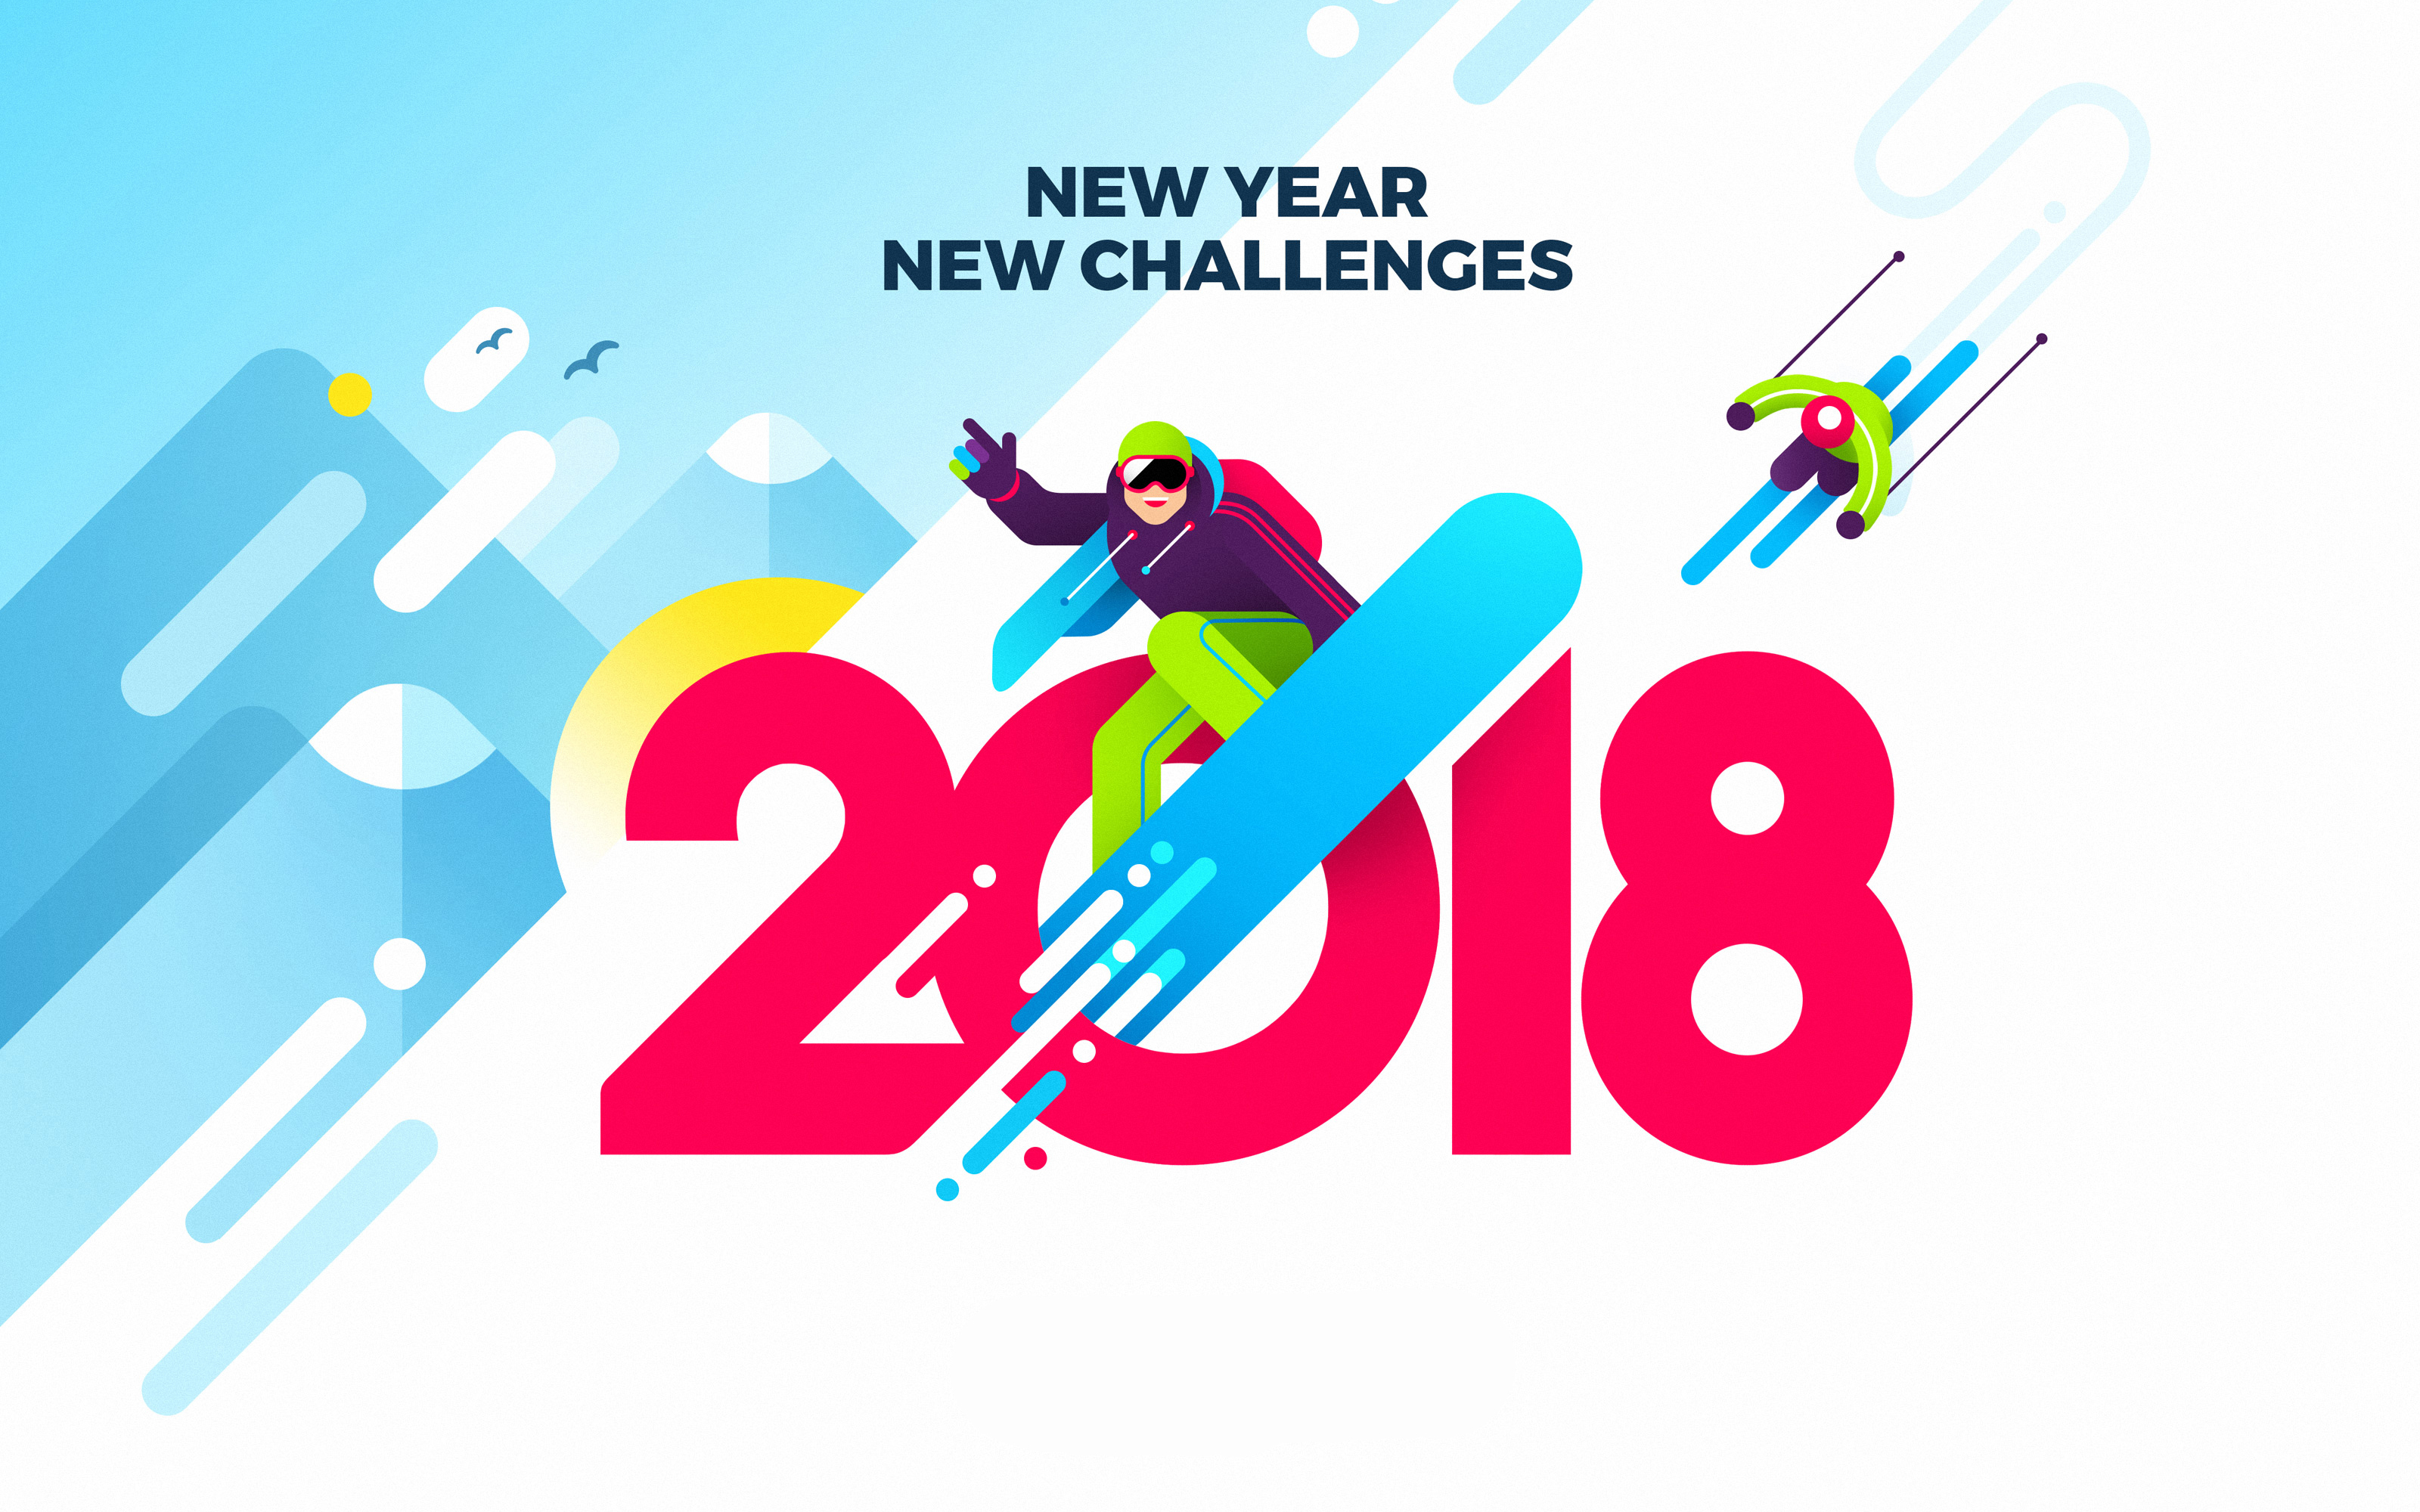 2018 New Year New Challenges